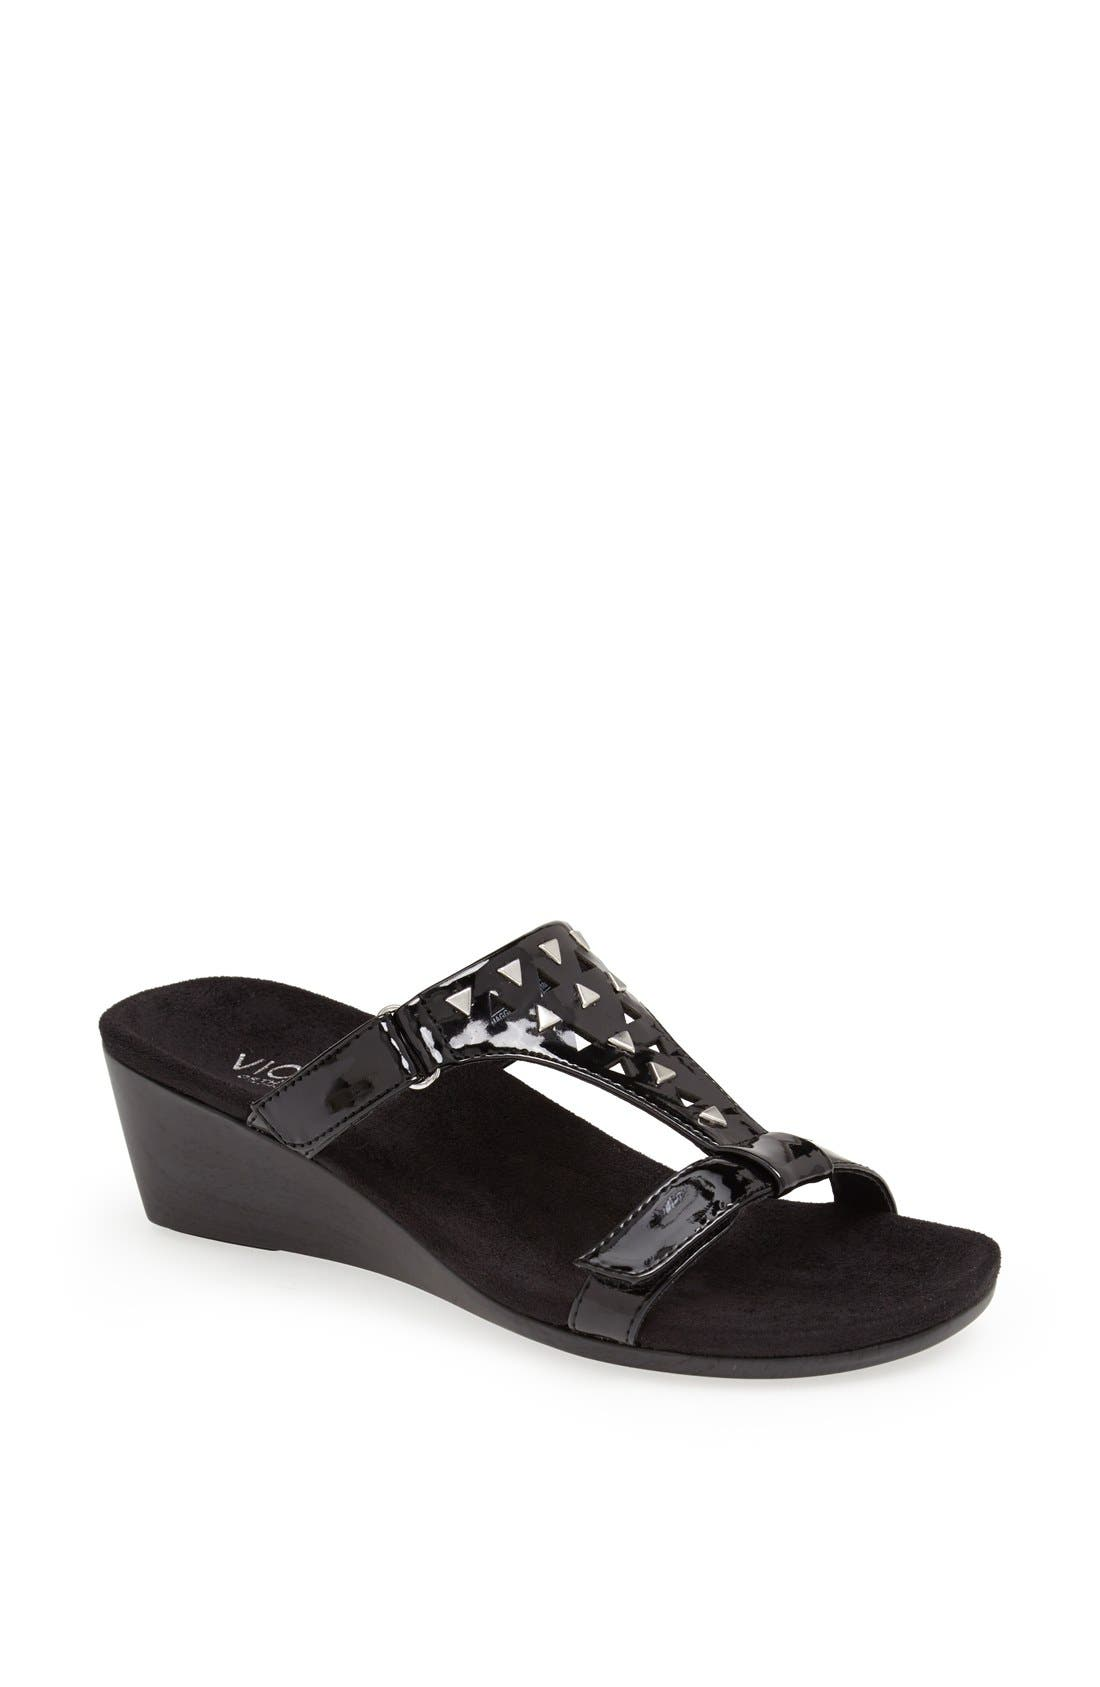 Alternate Image 1 Selected - Vionic 'Maggie' Geometric Cutout Wedge Sandal